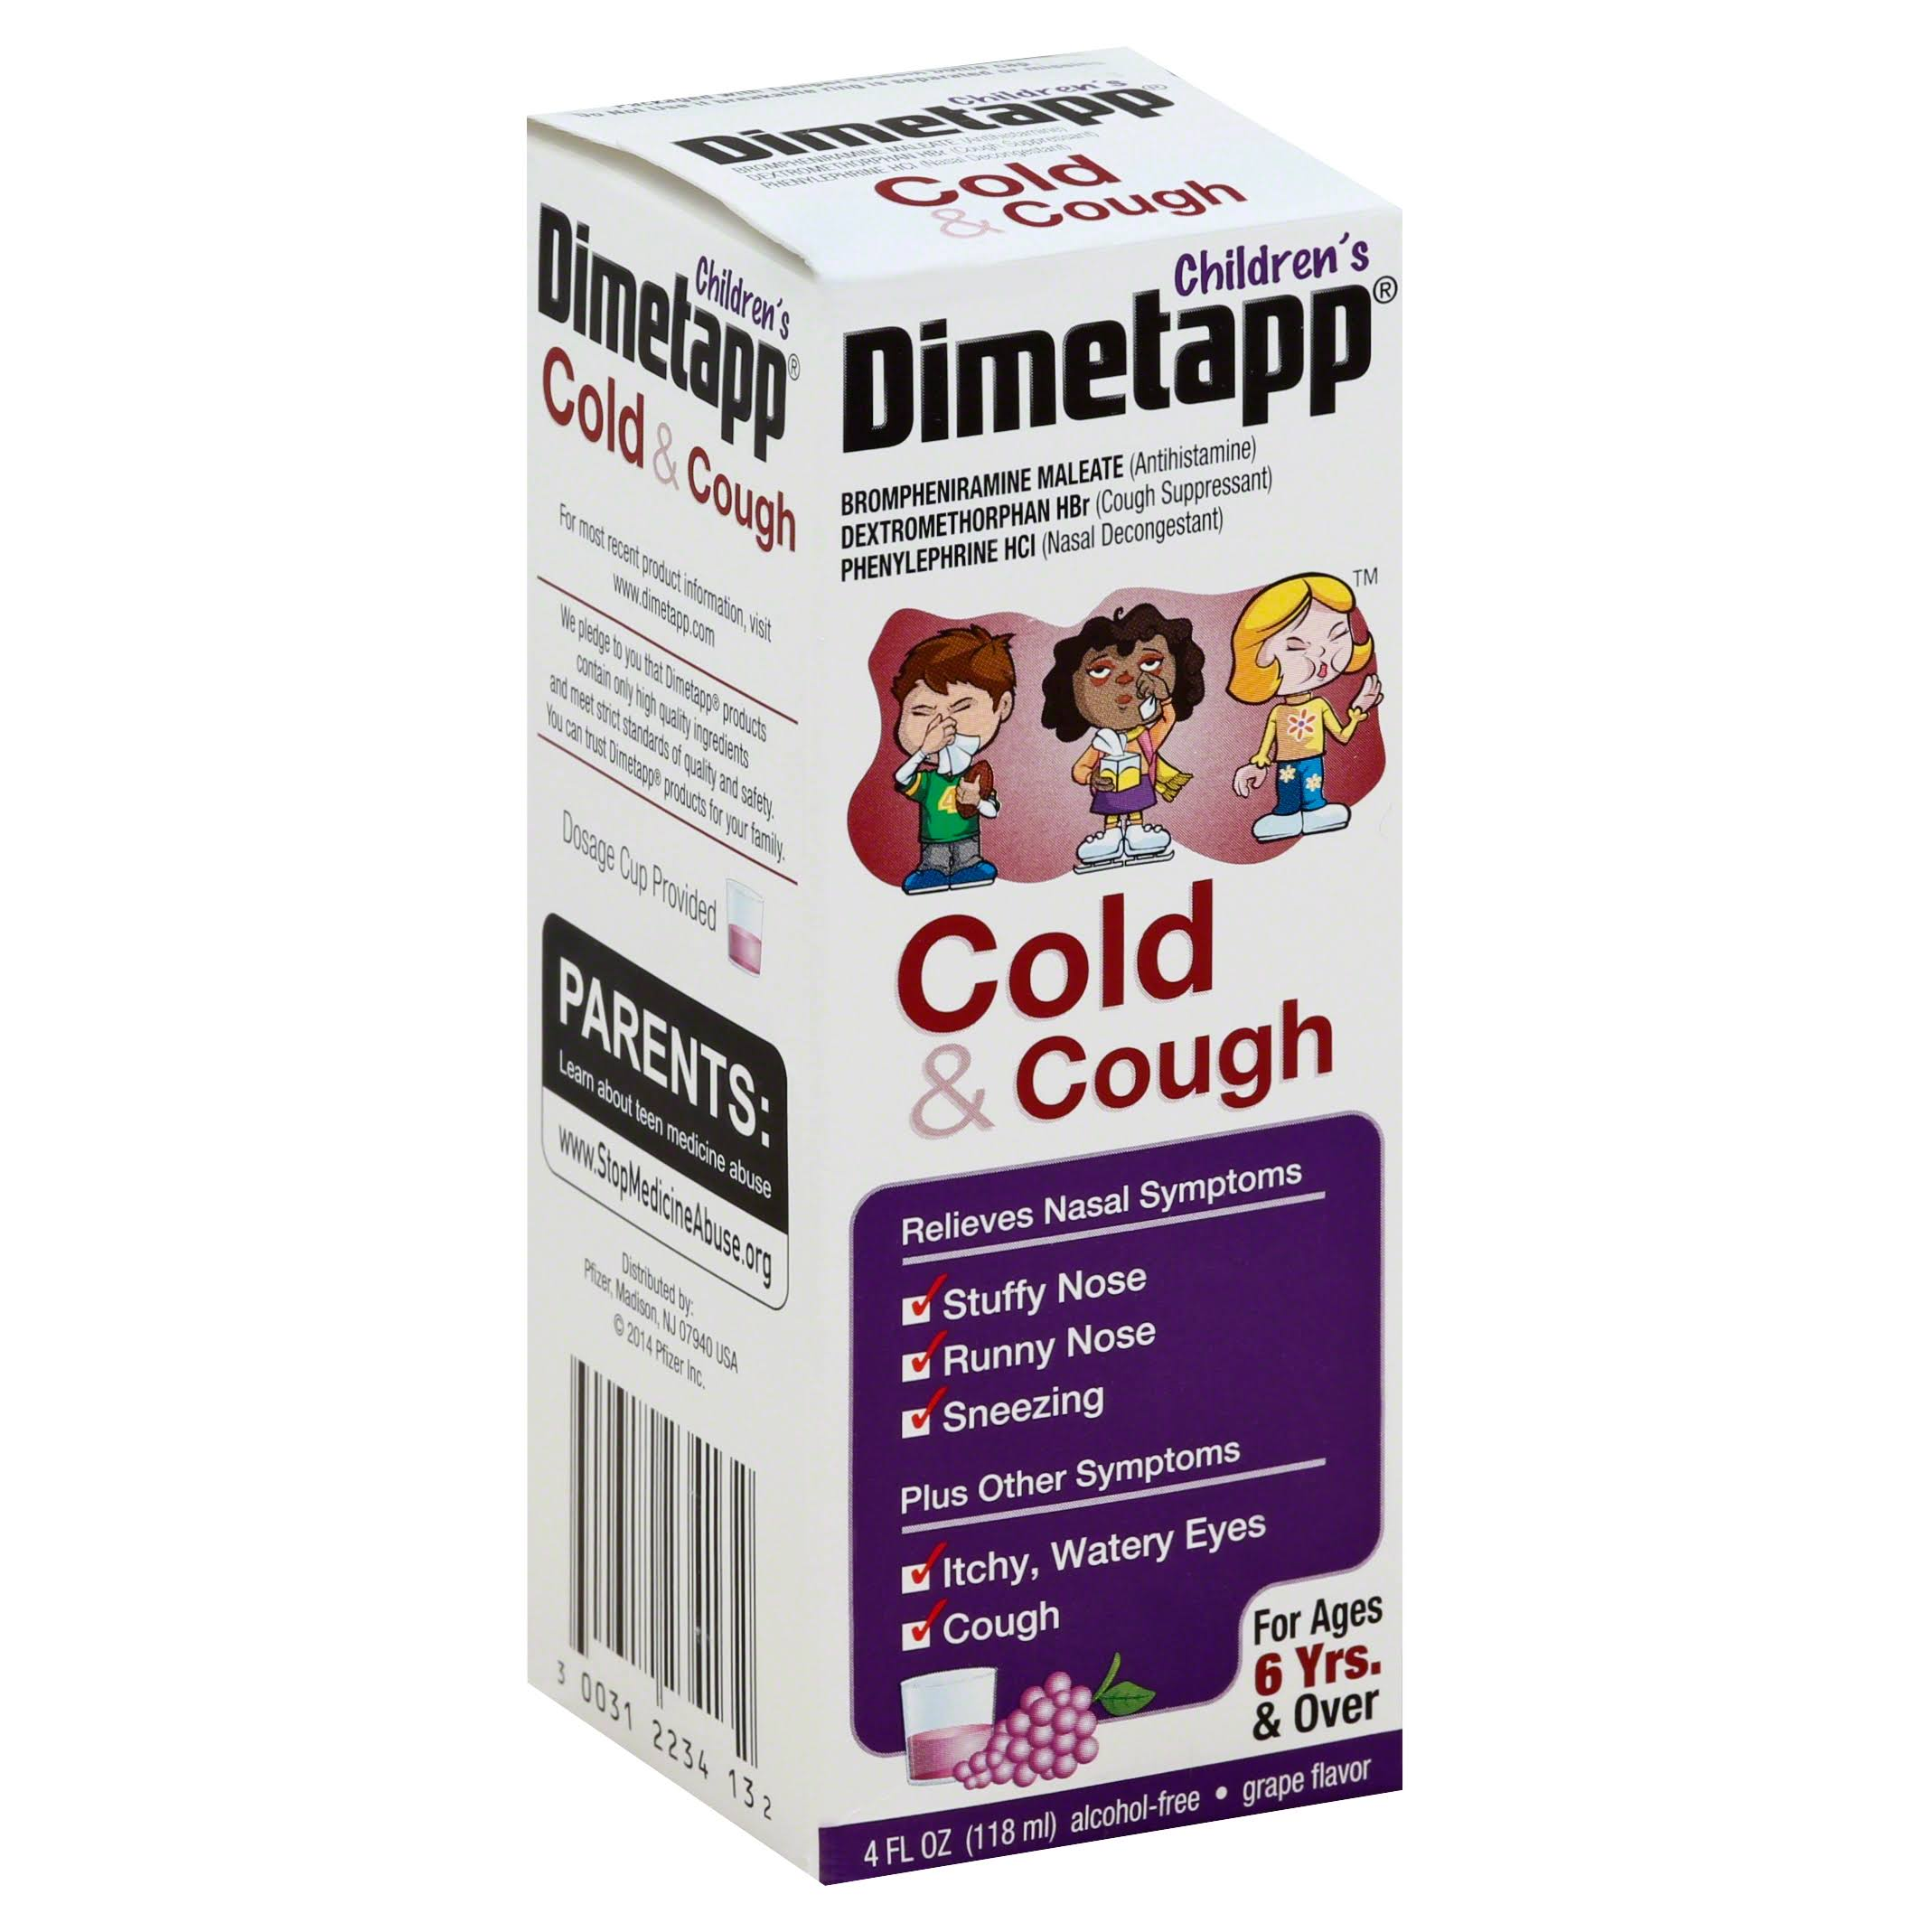 Dimetapp Children's Cold & Cough Grape Flavor for Ages 6 Yrs & Over - 4 oz